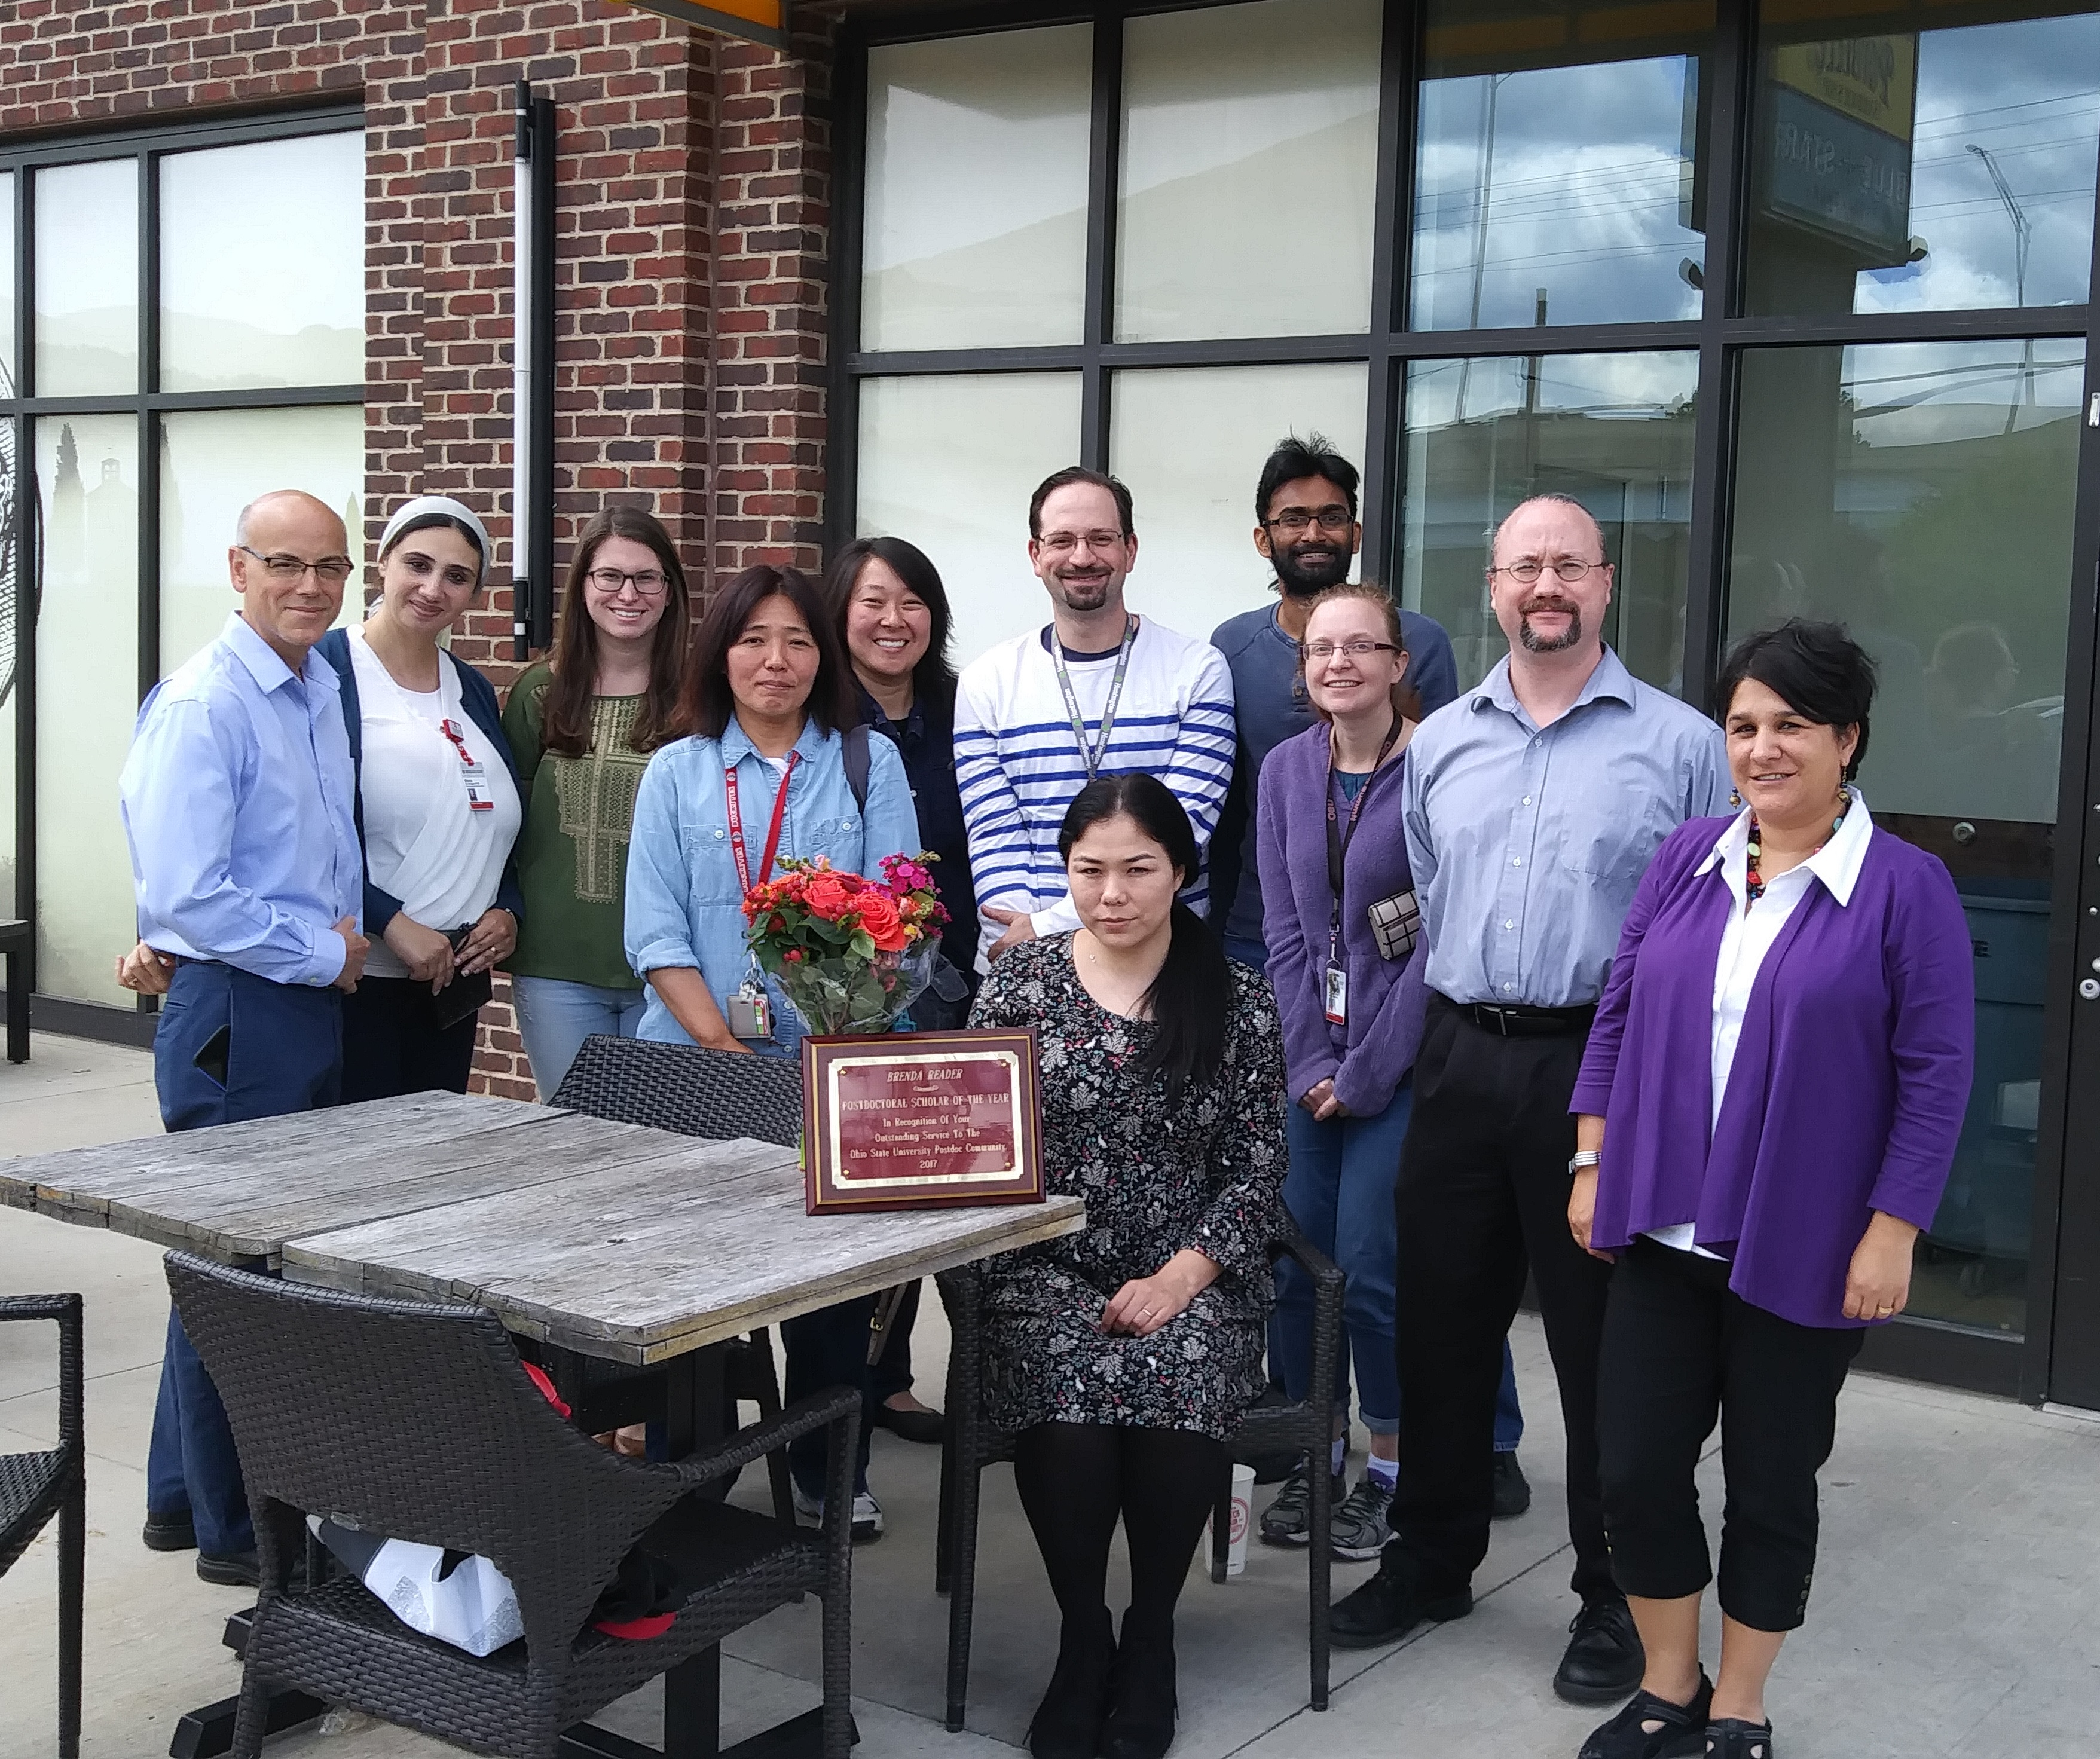 Postdoctoral Service Award | The Office of Postdoctoral Affairs